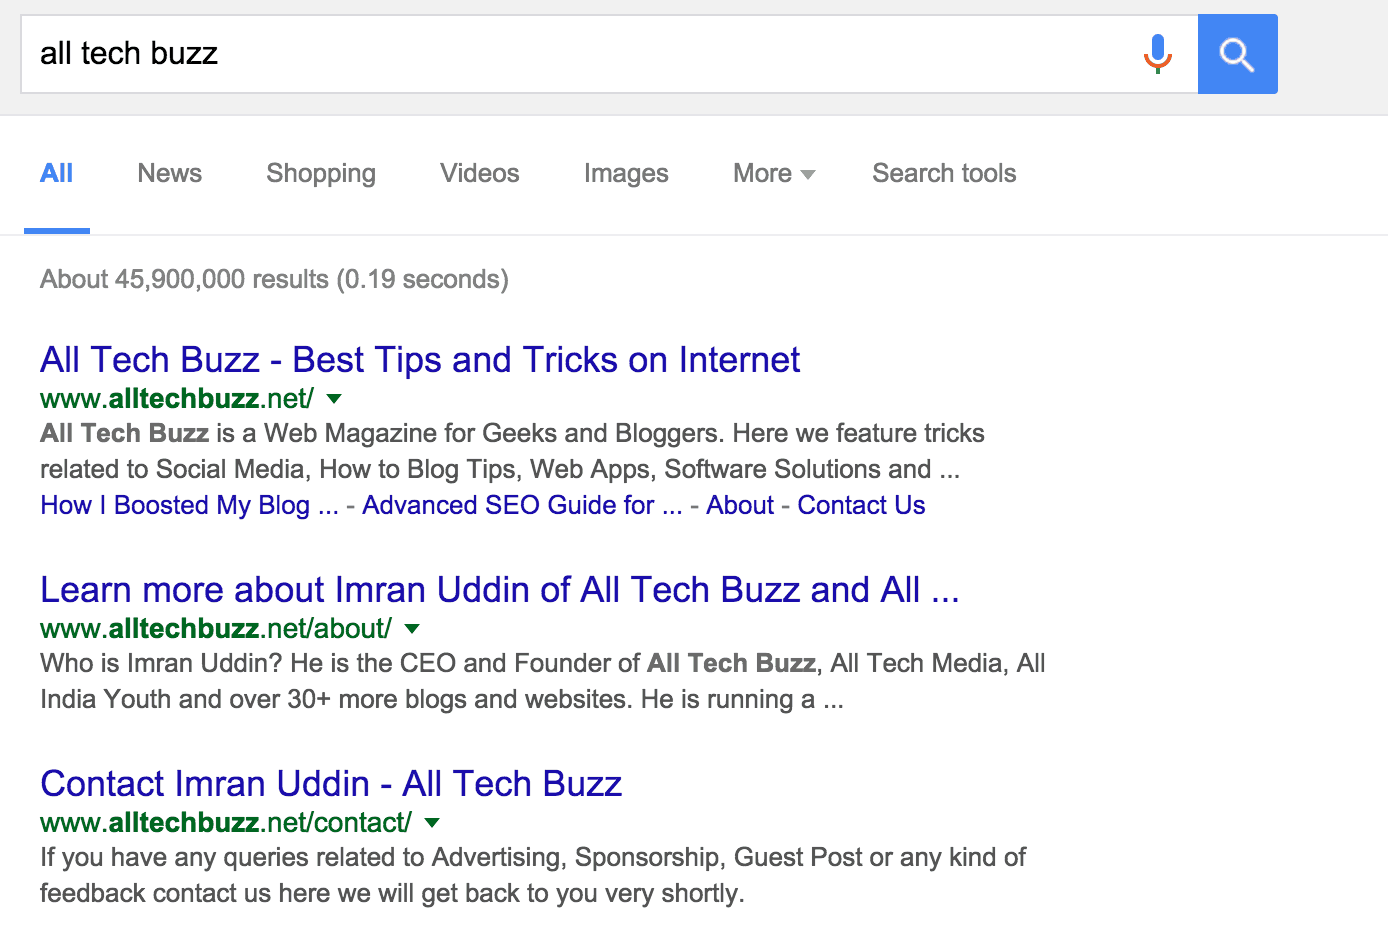 Clear visibility of homepage in search results